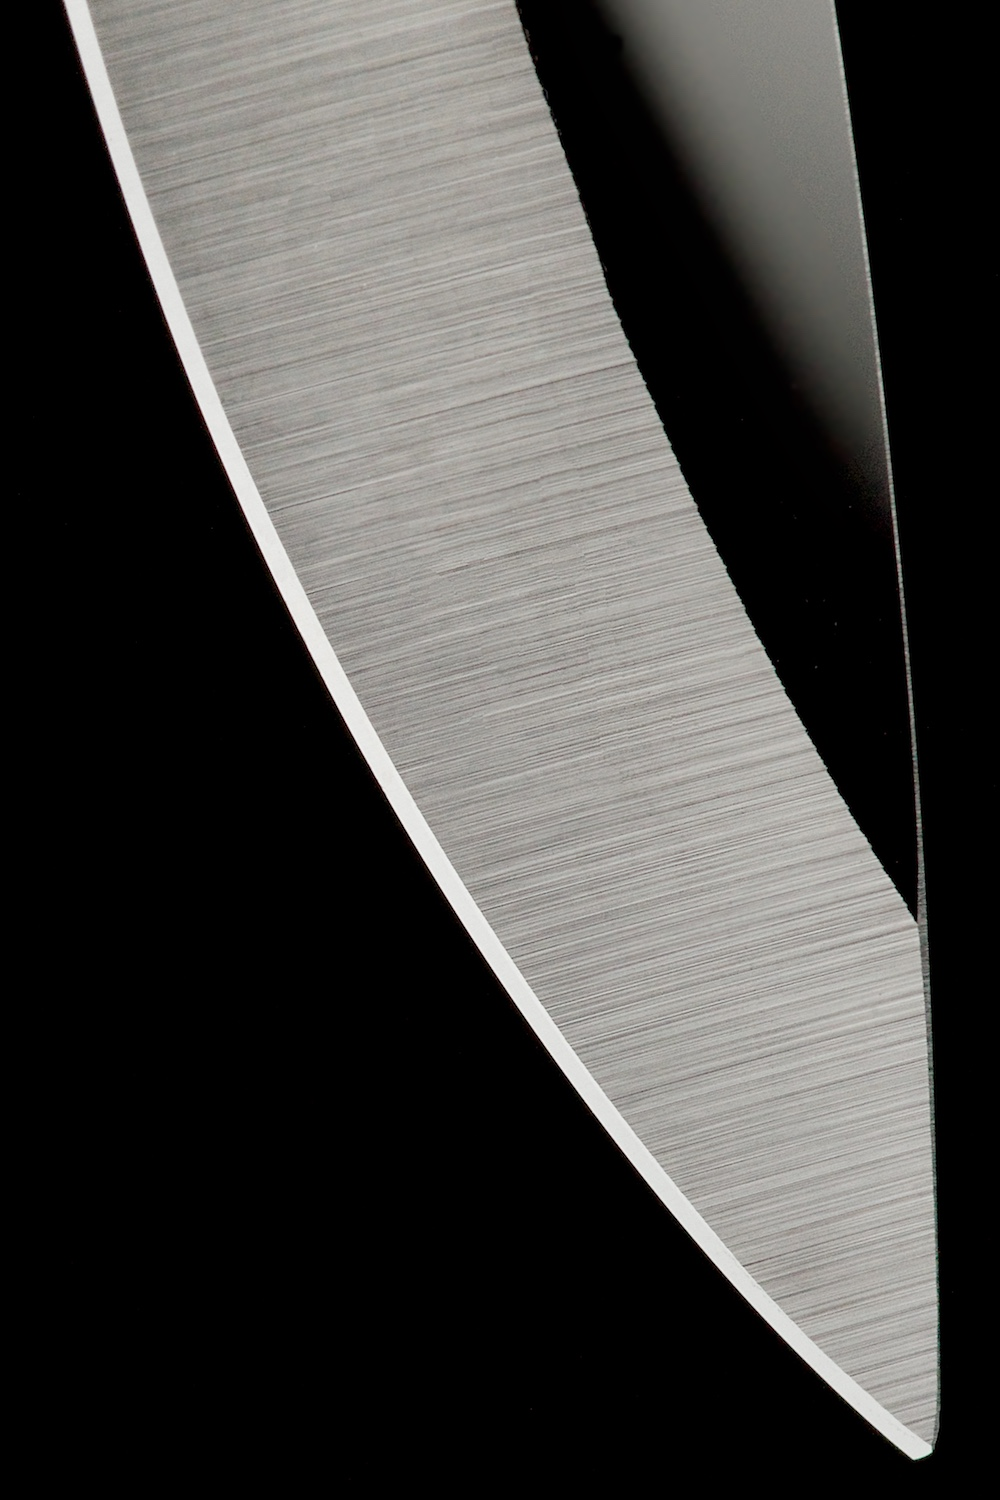 Knife blade detail abstract black & white by Bret Doss Commercial Product Photography Seattle